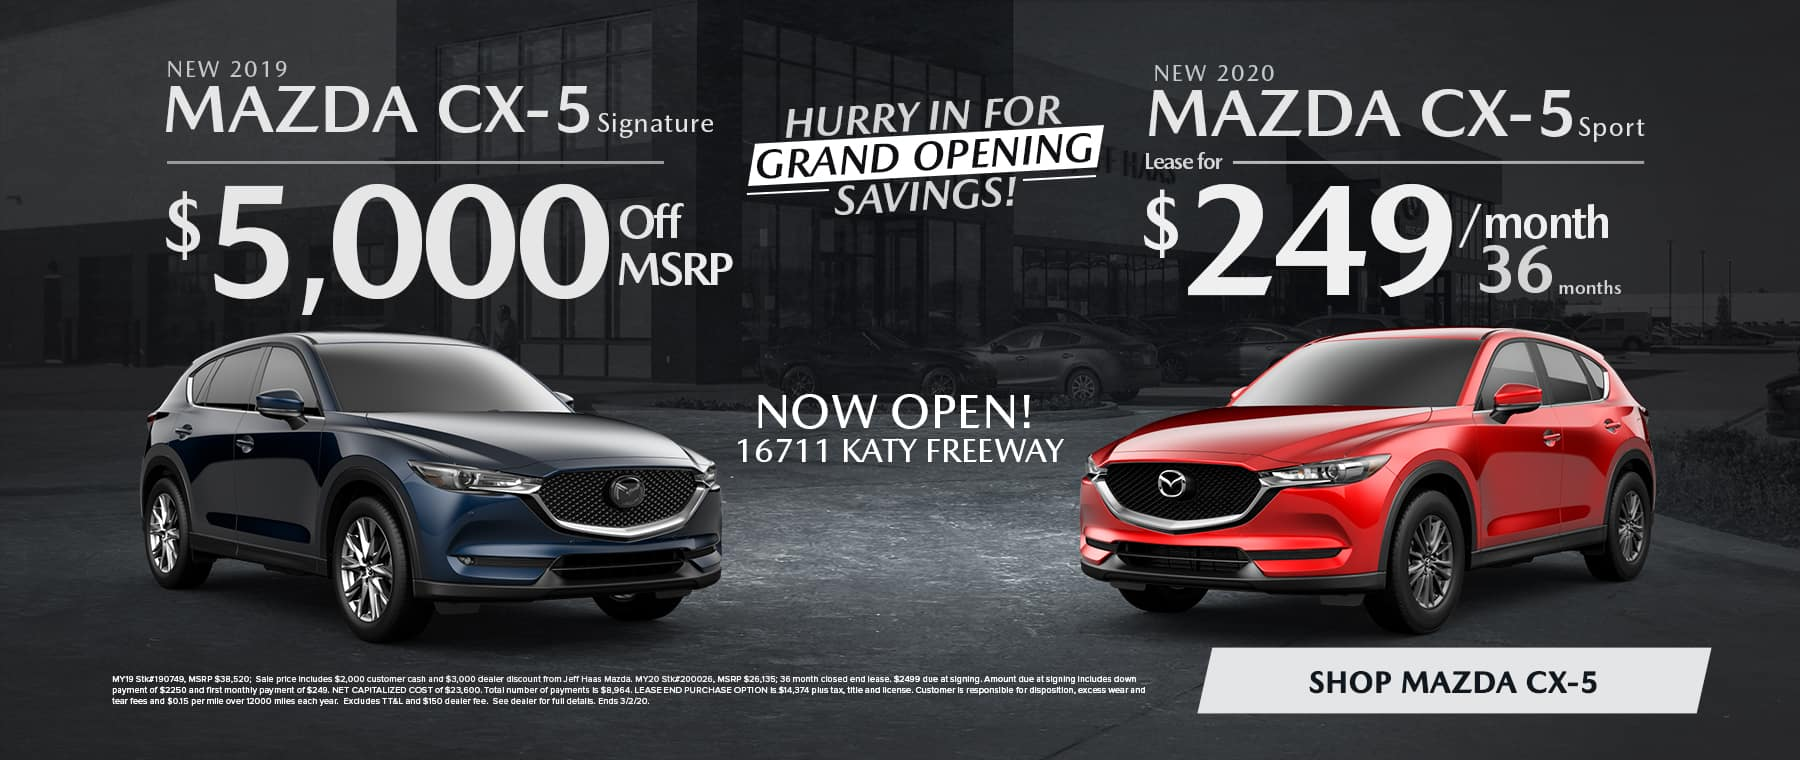 New 2019 MAZDA CX-5 Signature $5,000 off MSRP New 2020 MAZDA CX-5 Sport Lease for $249/mo for 36 mo